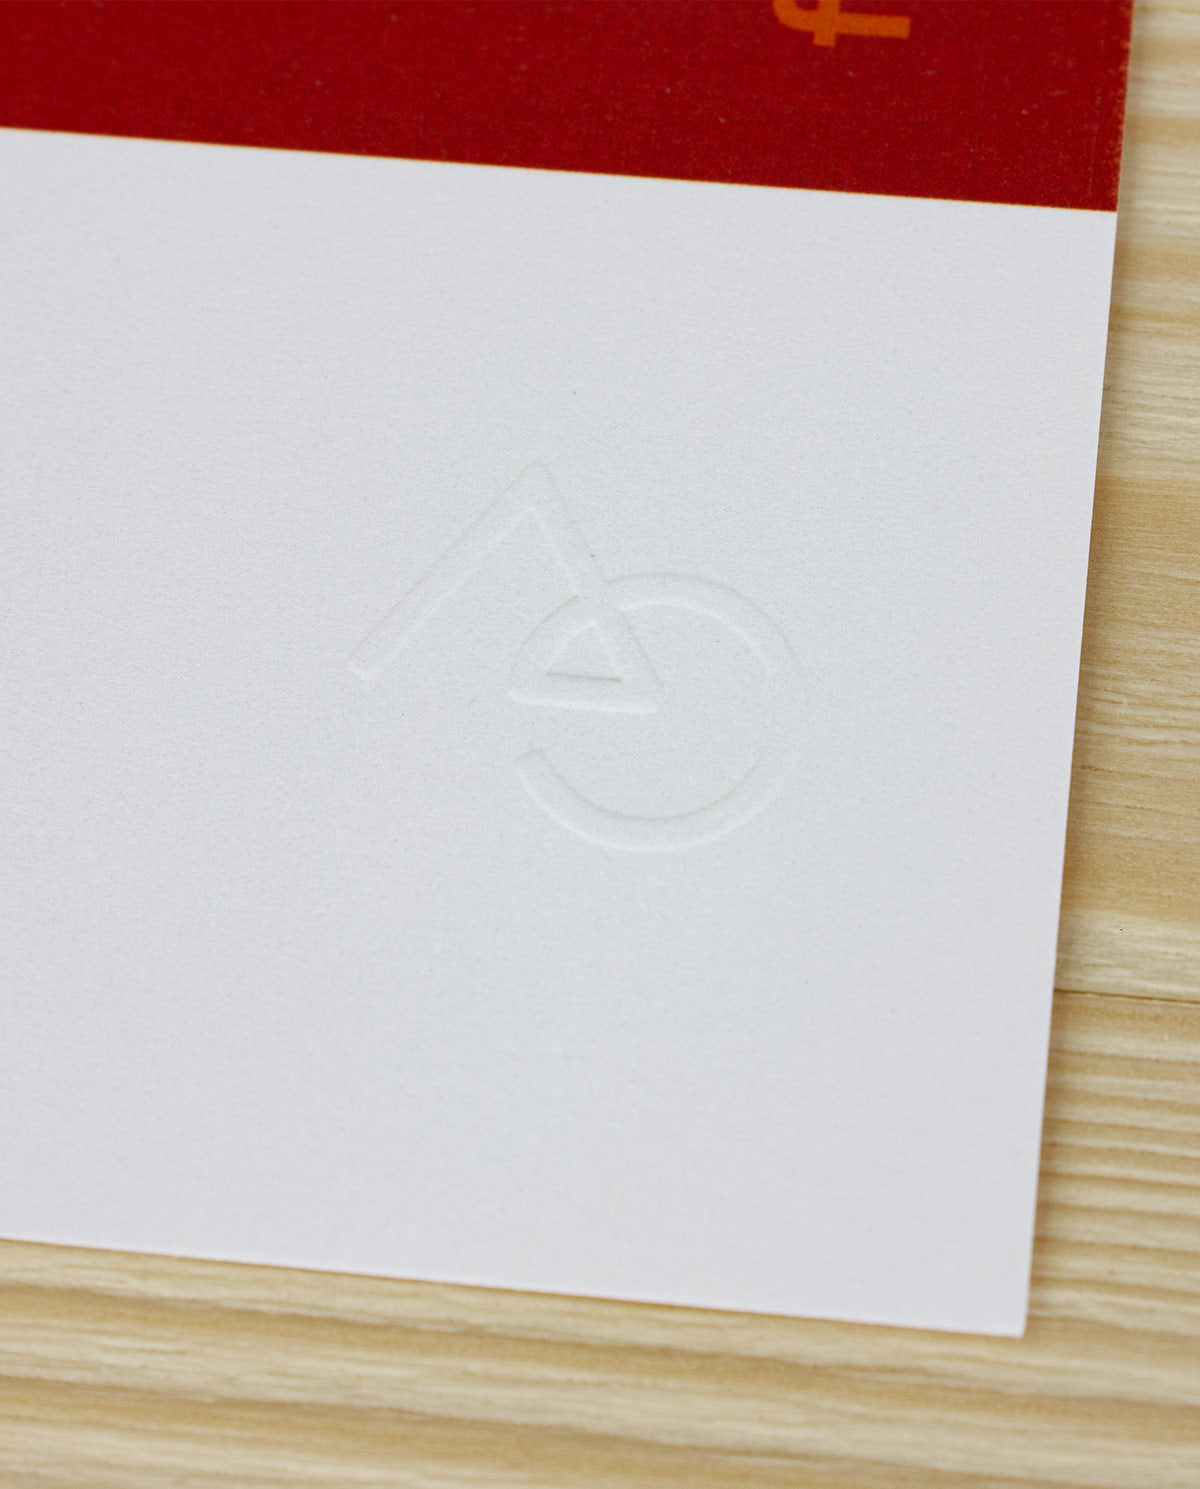 Ahnako embossed logo close up